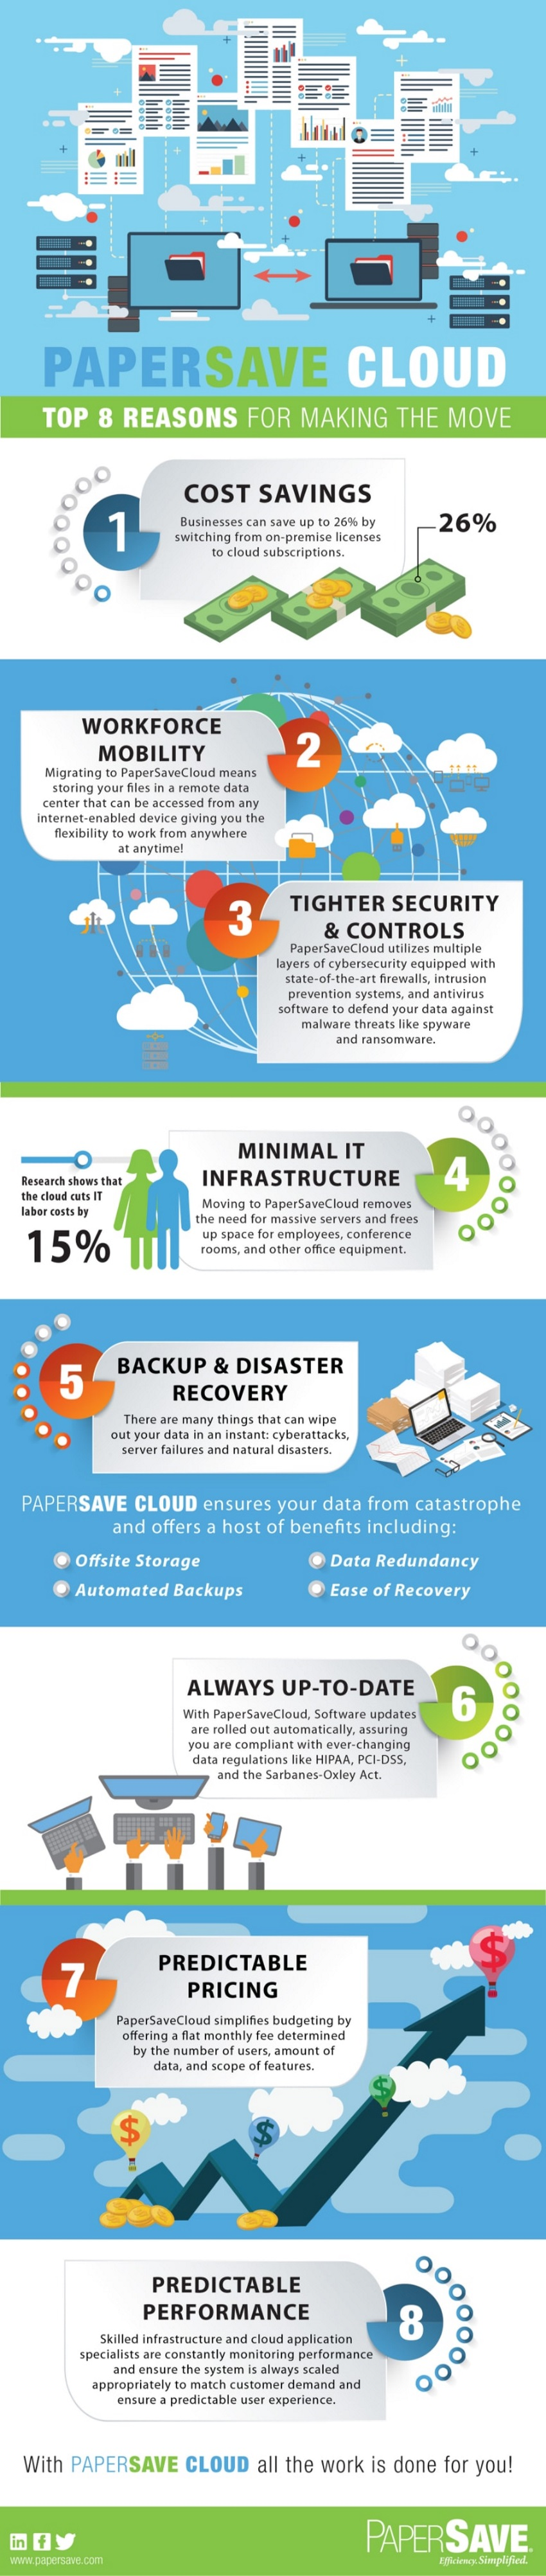 img-PaperSave-Cloud-Infographic-Top8-reasons-850x4000